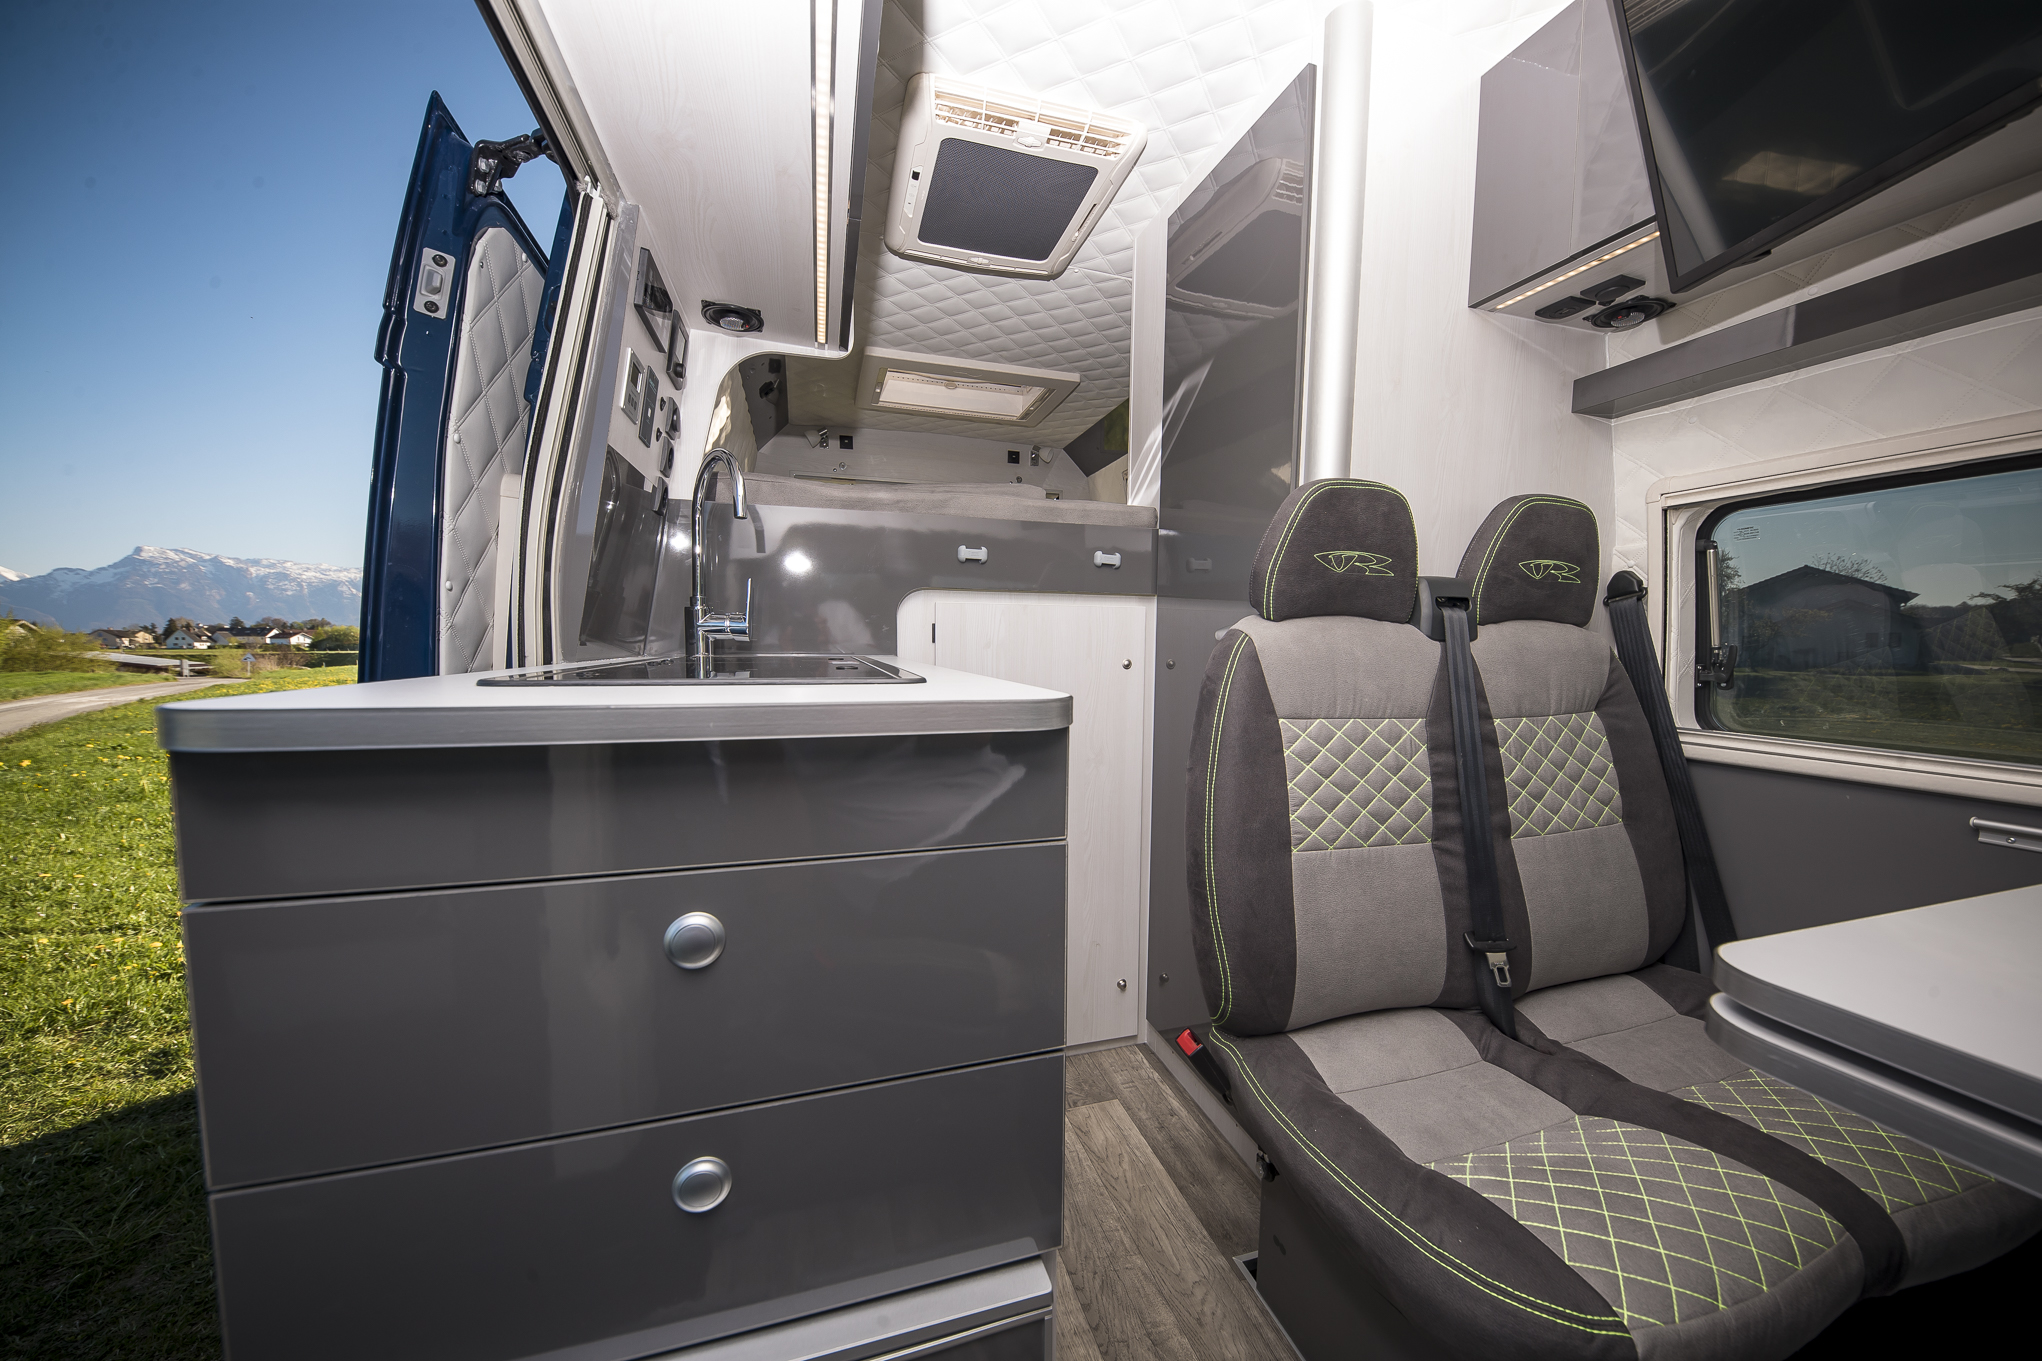 vrm vr motorhomes interior luxus camper grey green limited edition seits s7 fenster s4 dometic